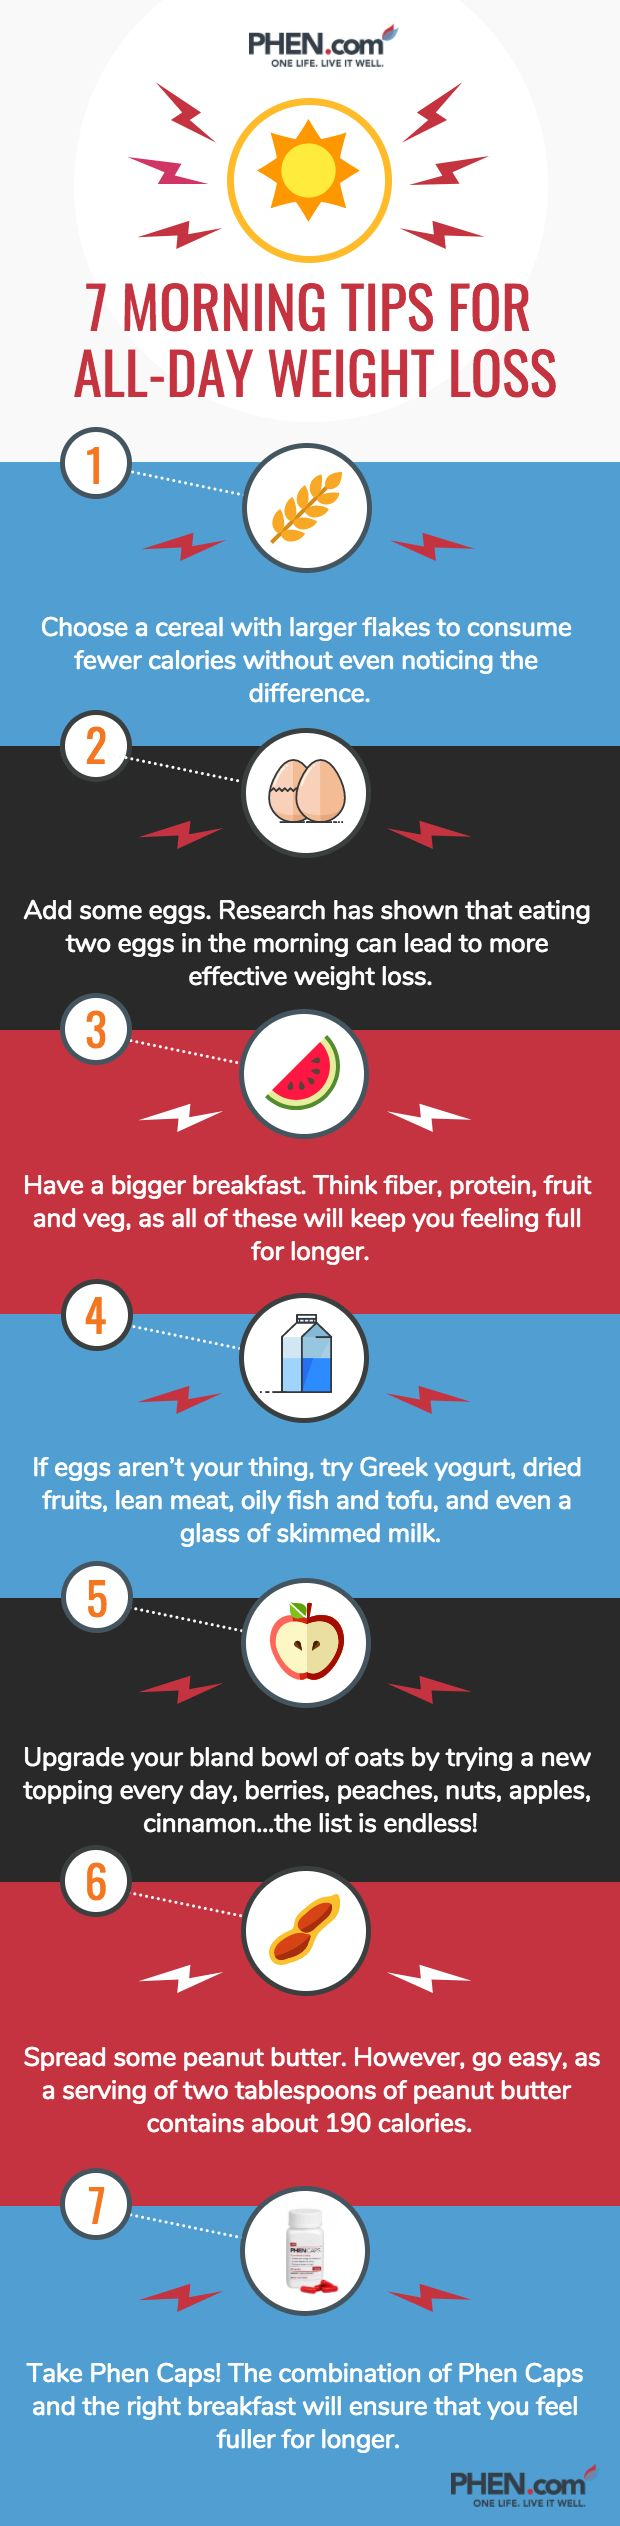 Hit your goals in no time with these great breakfast-boosting tips, all of which are backed by scientific research! #weightloss #review #testimonial #honeymoon #bride #healthy #supplements #fitness #health #fit #phencaps #healthy #recipe #breakfast #motivation #phentermine #diet #appetite #holiday #weightgain